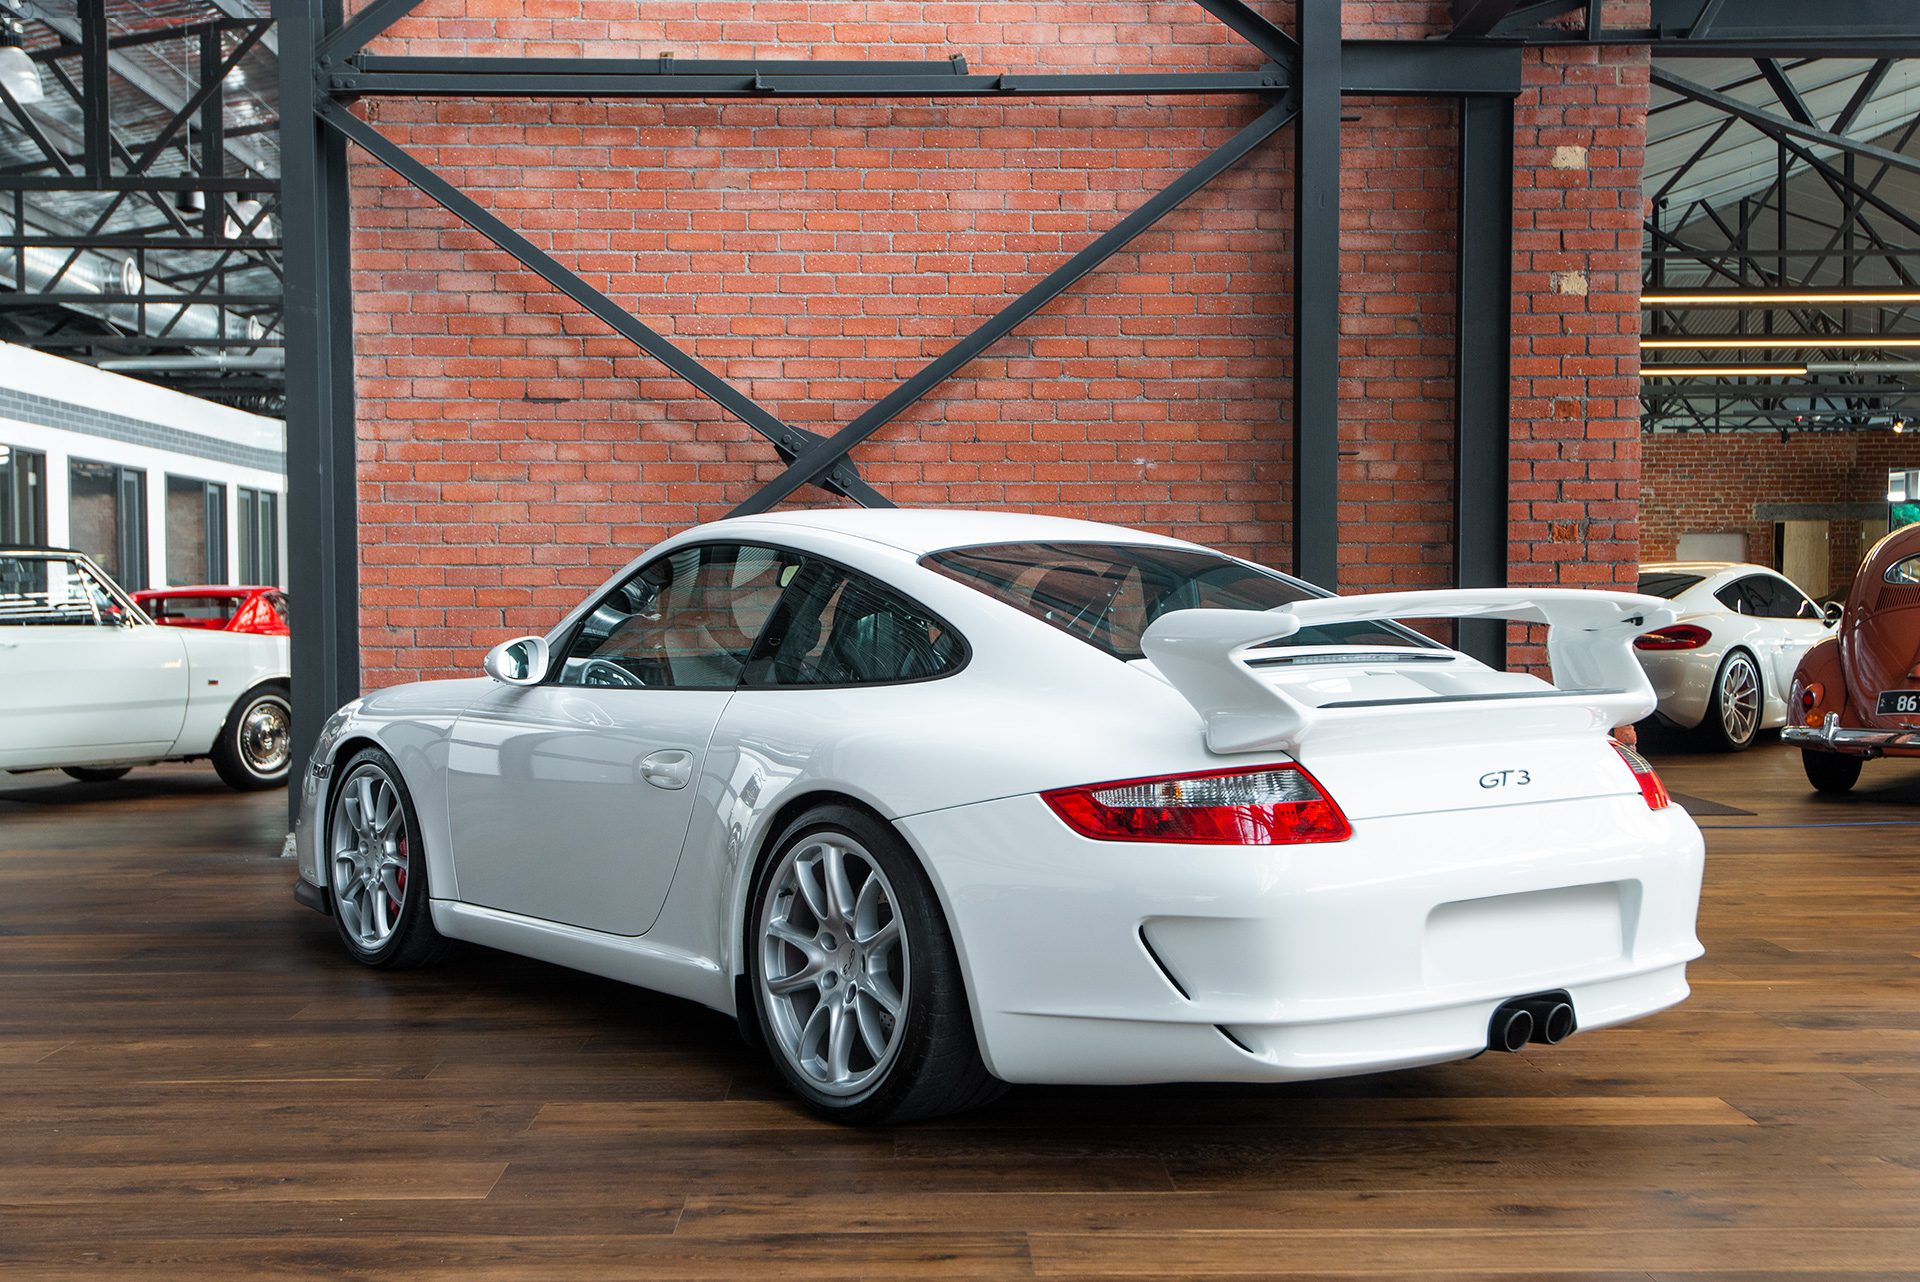 2008 My08 Porsche 911 997 Gt3 Clubsport Richmonds Classic And Prestige Cars Storage And Sales Adelaide Australia